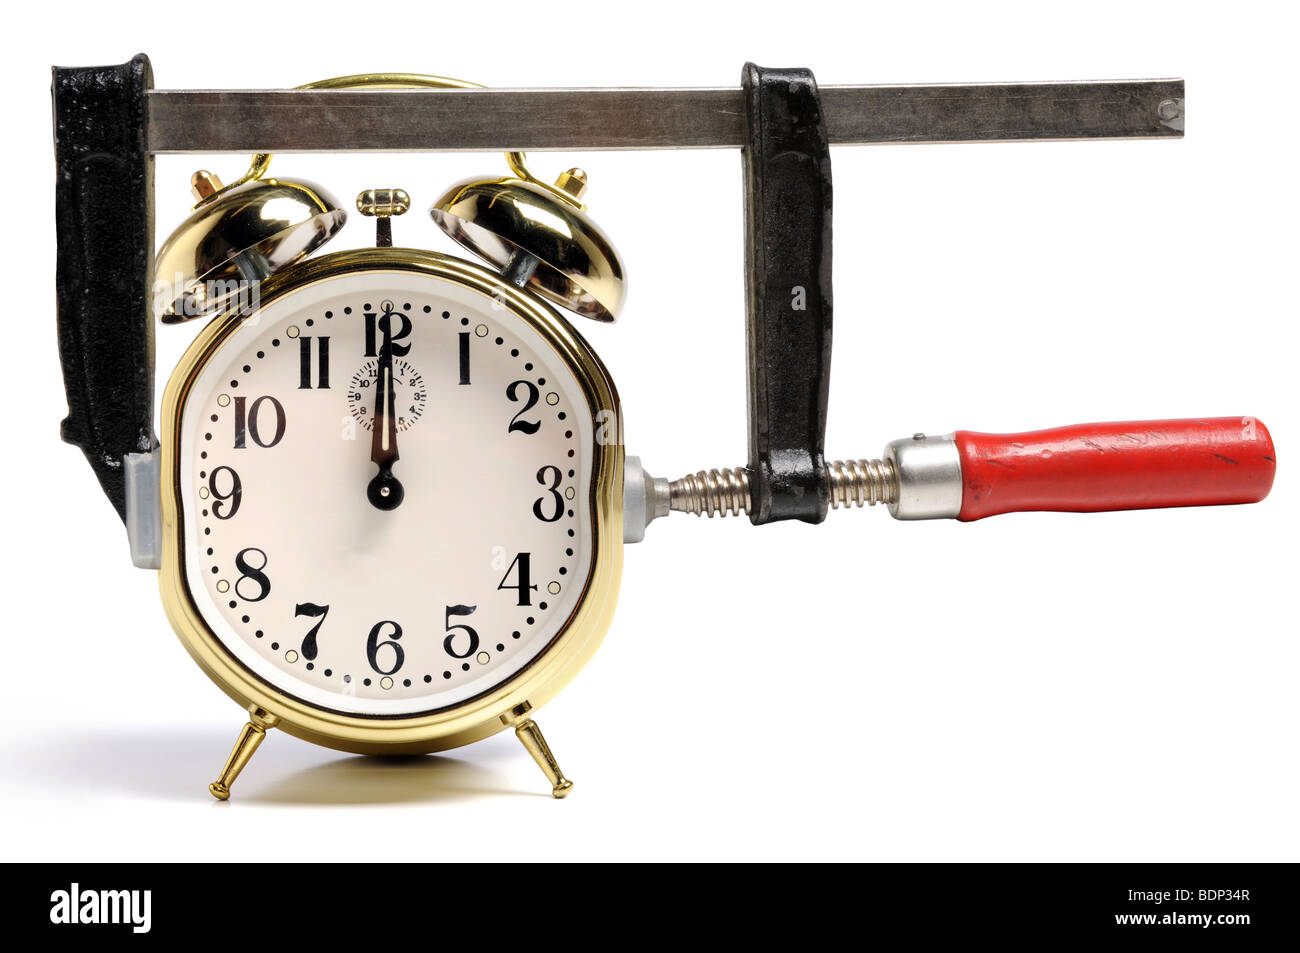 Pressed by time concept symbolized by press and time clock - Stock Image